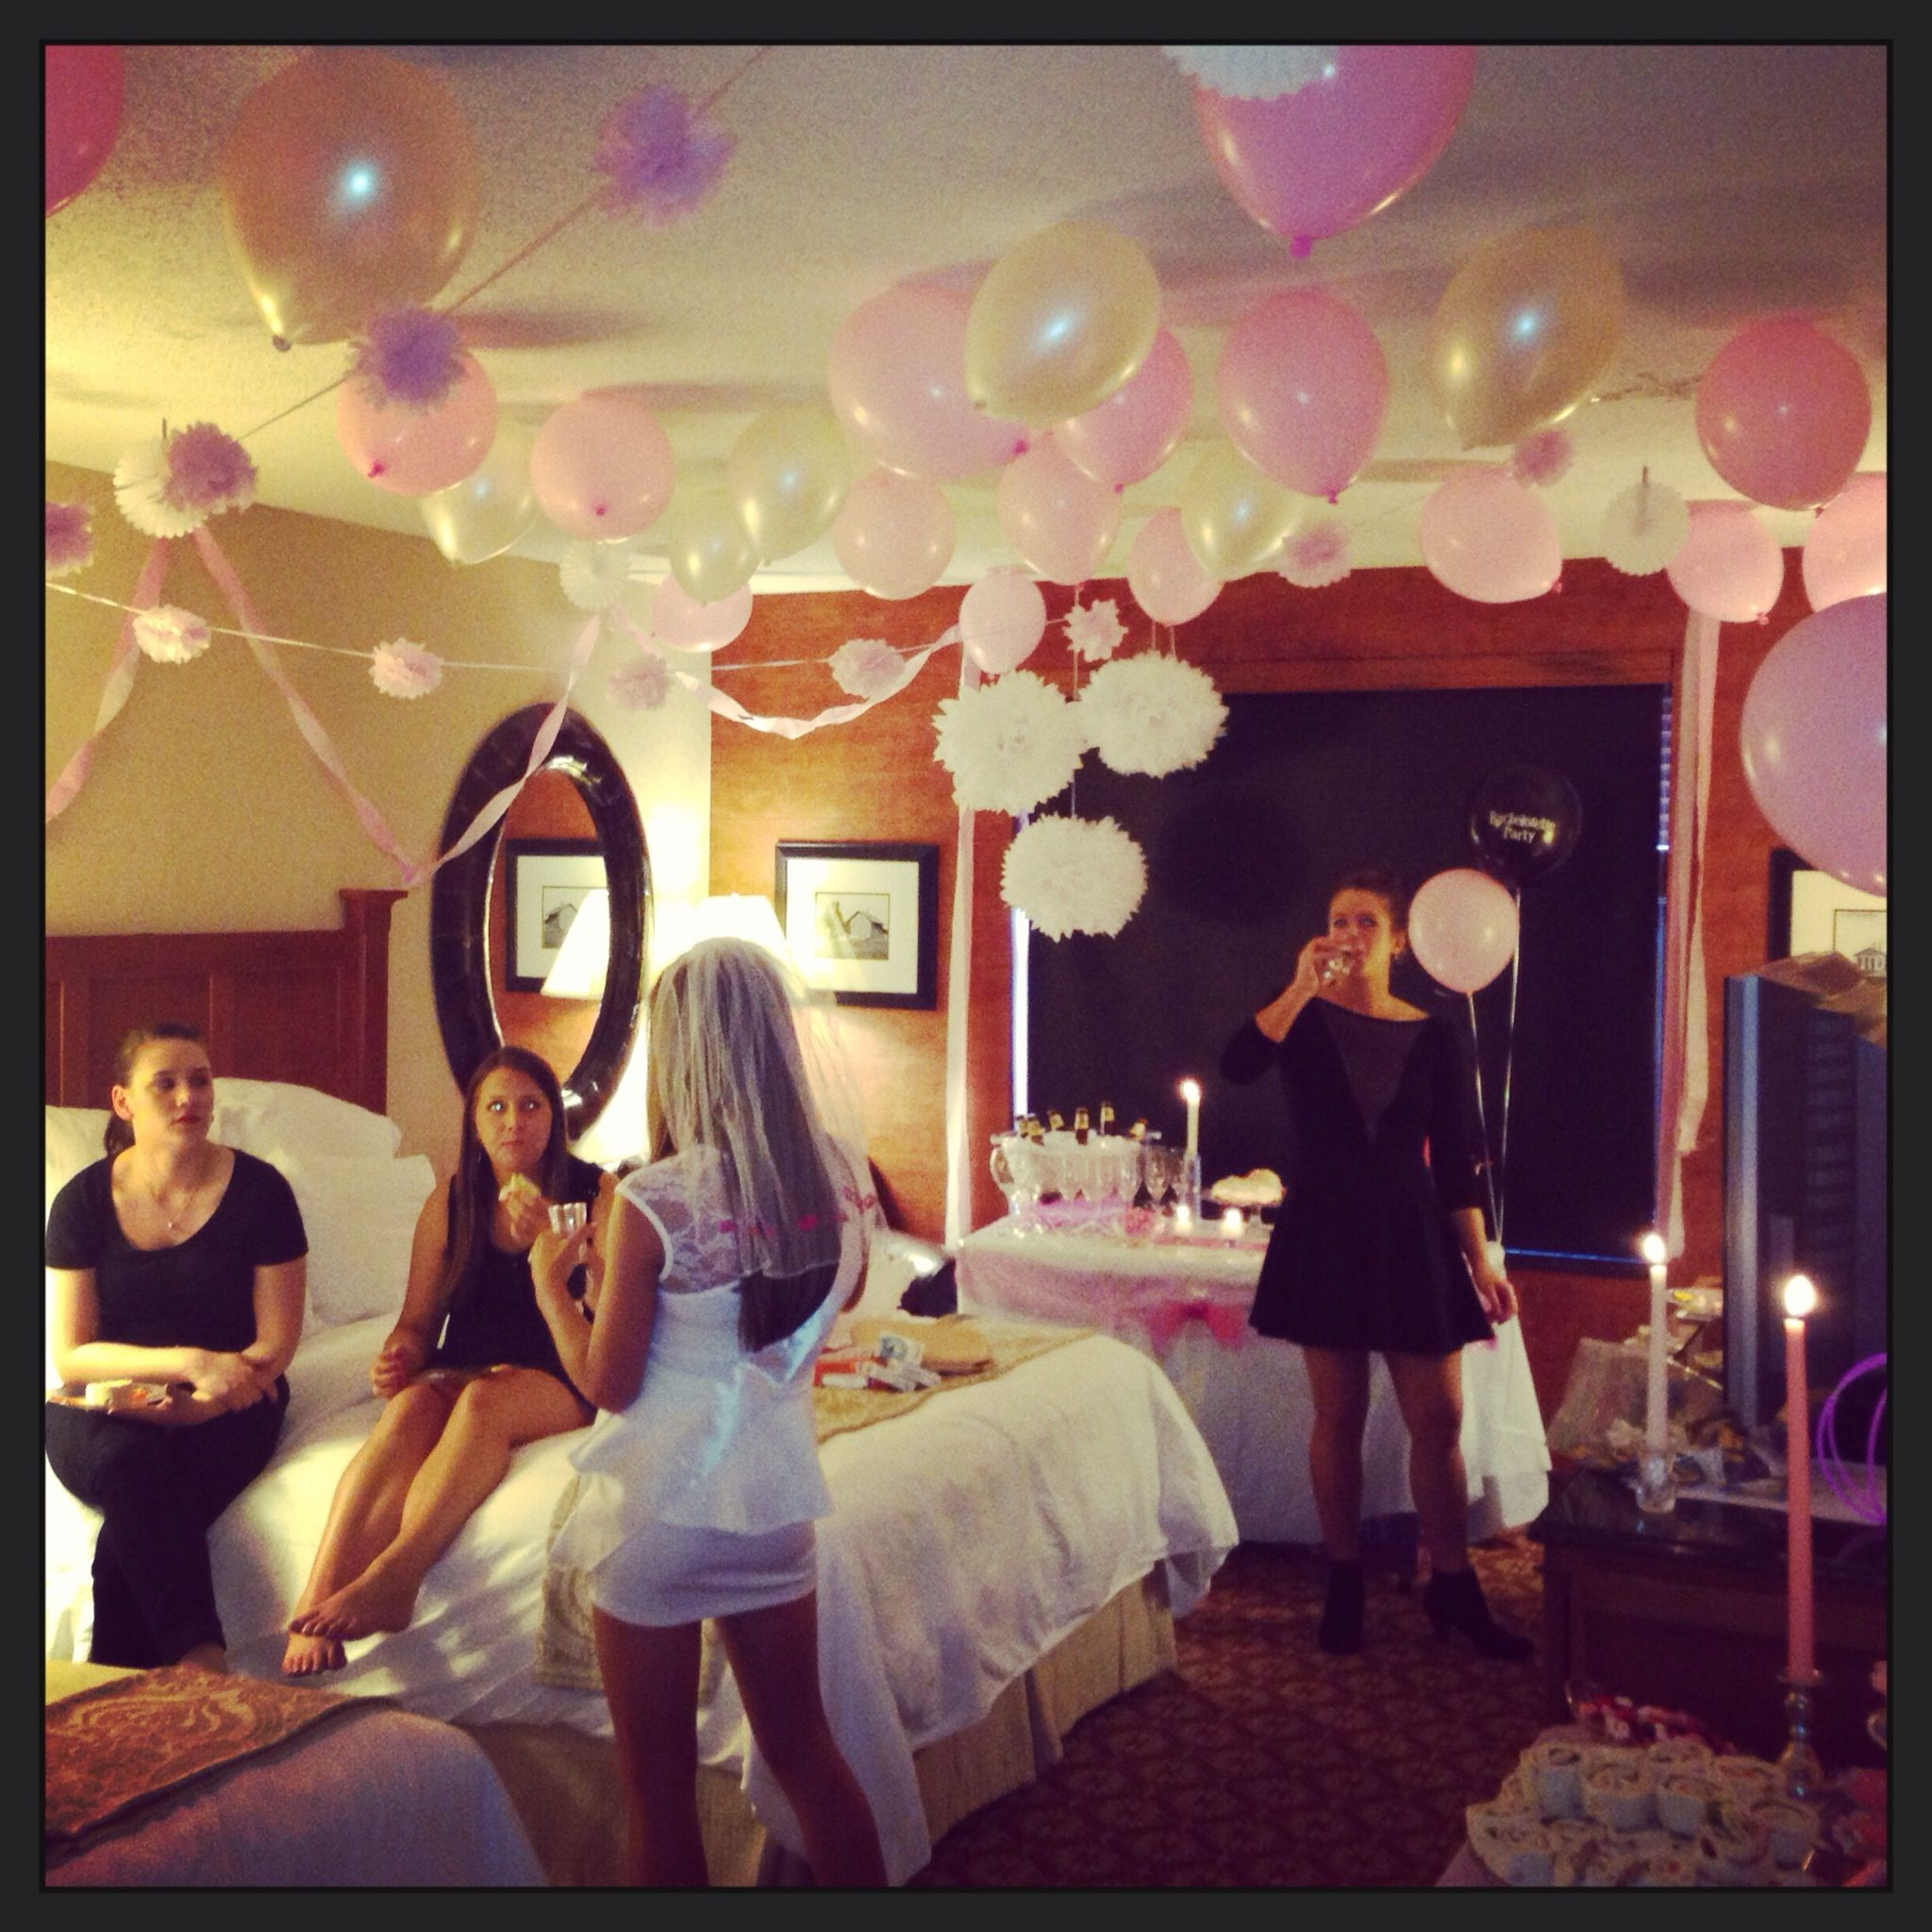 Best 25 hotel bachelorette party ideas on pinterest for Bachelorette party decoration ideas